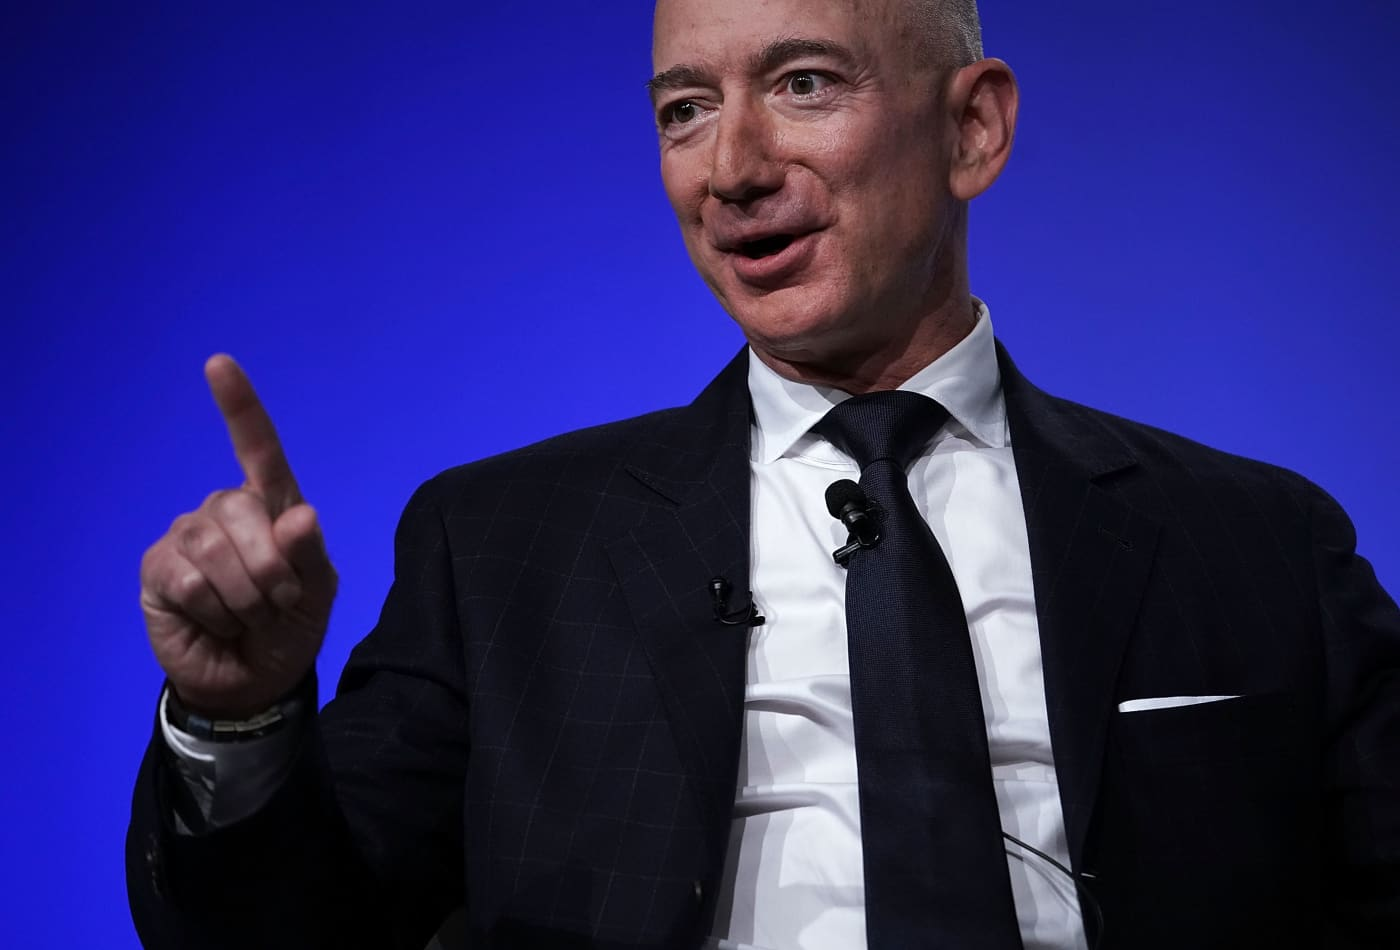 bezos jeff mars amazon space ceo much owner satellite company live humans charity colonies founder origin internet bring race which